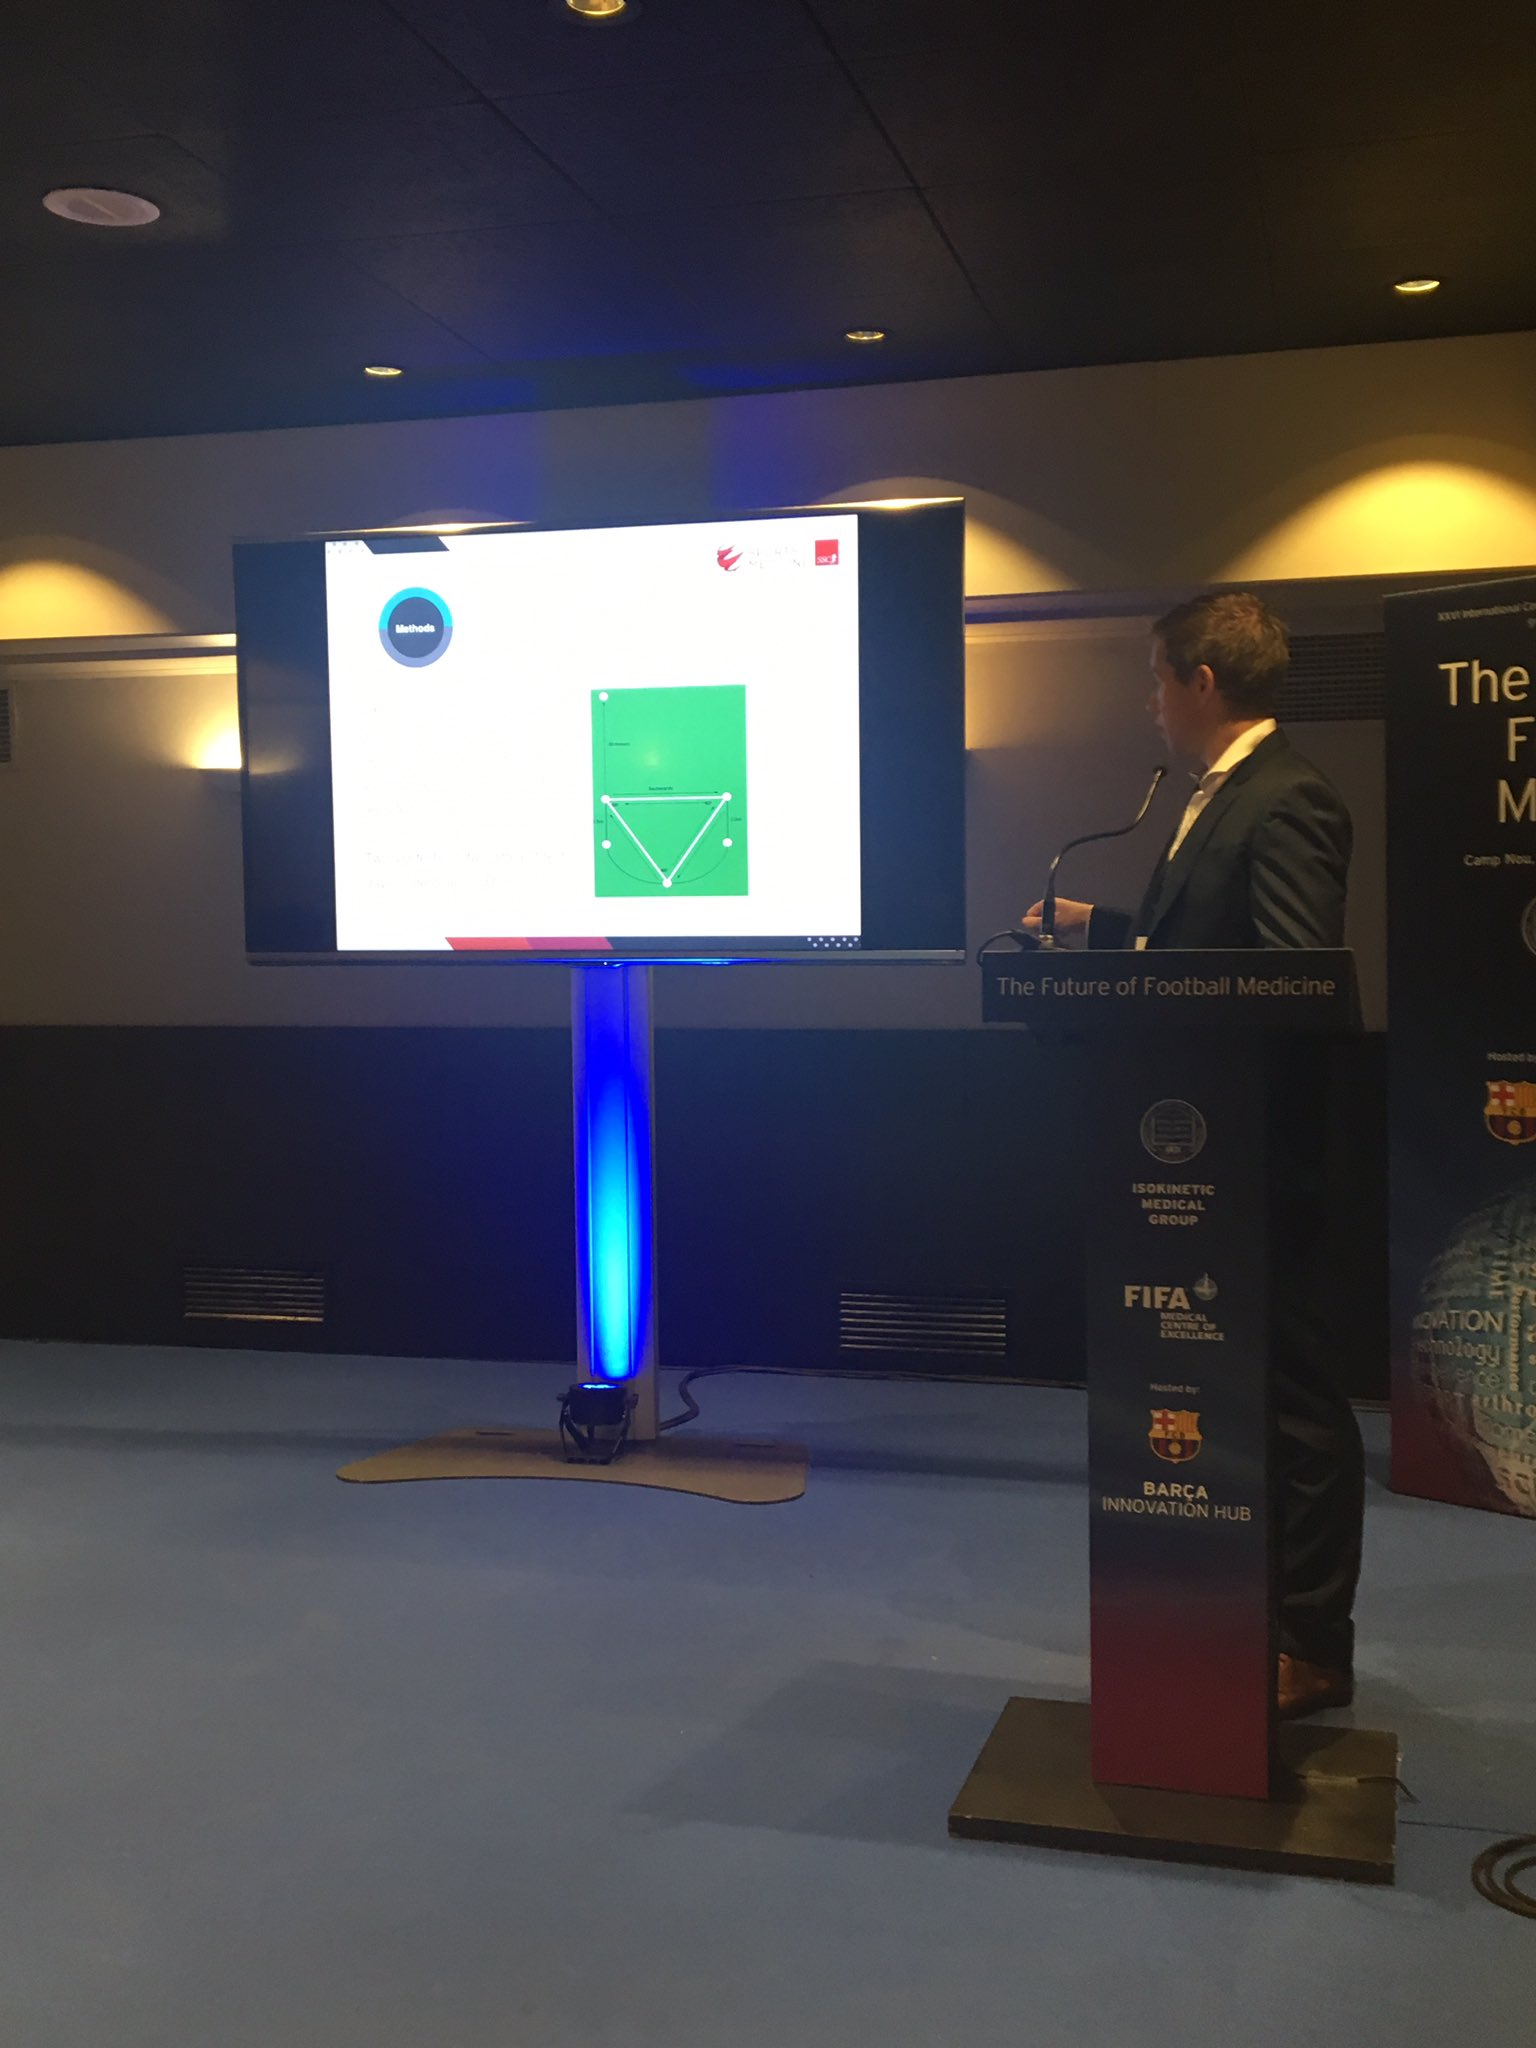 Photo: Eamon O Reilly presenting research data at Isokinetic Football Medicine 2017.